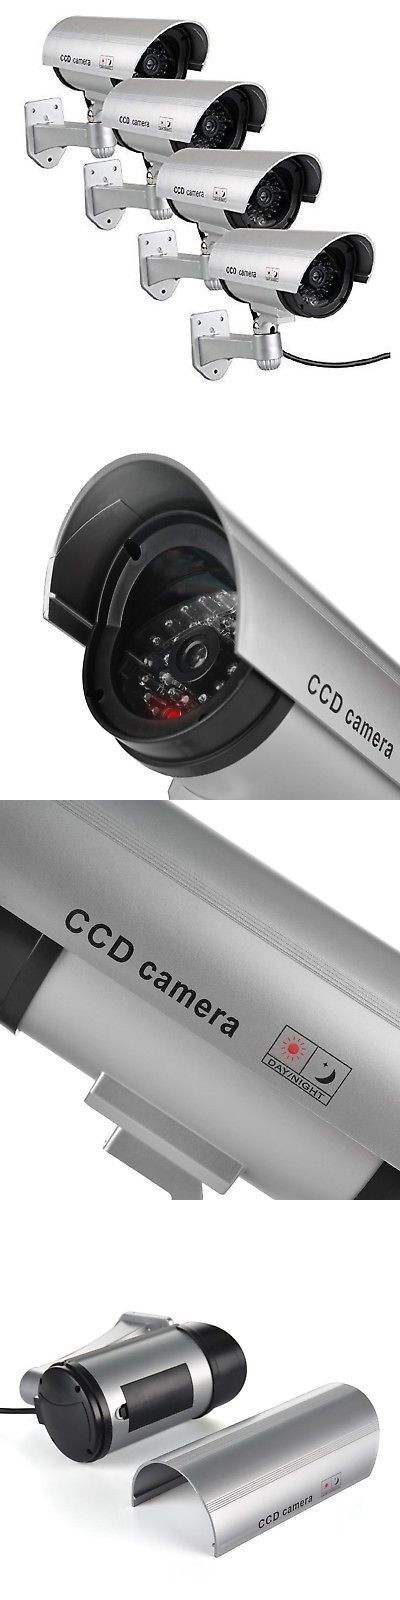 Dummy Cameras: Waterproof Fake Dummy Simulated Cameras Dummy Security Camera Indoor Outd... New -> BUY IT NOW ONLY: $32.32 on eBay!